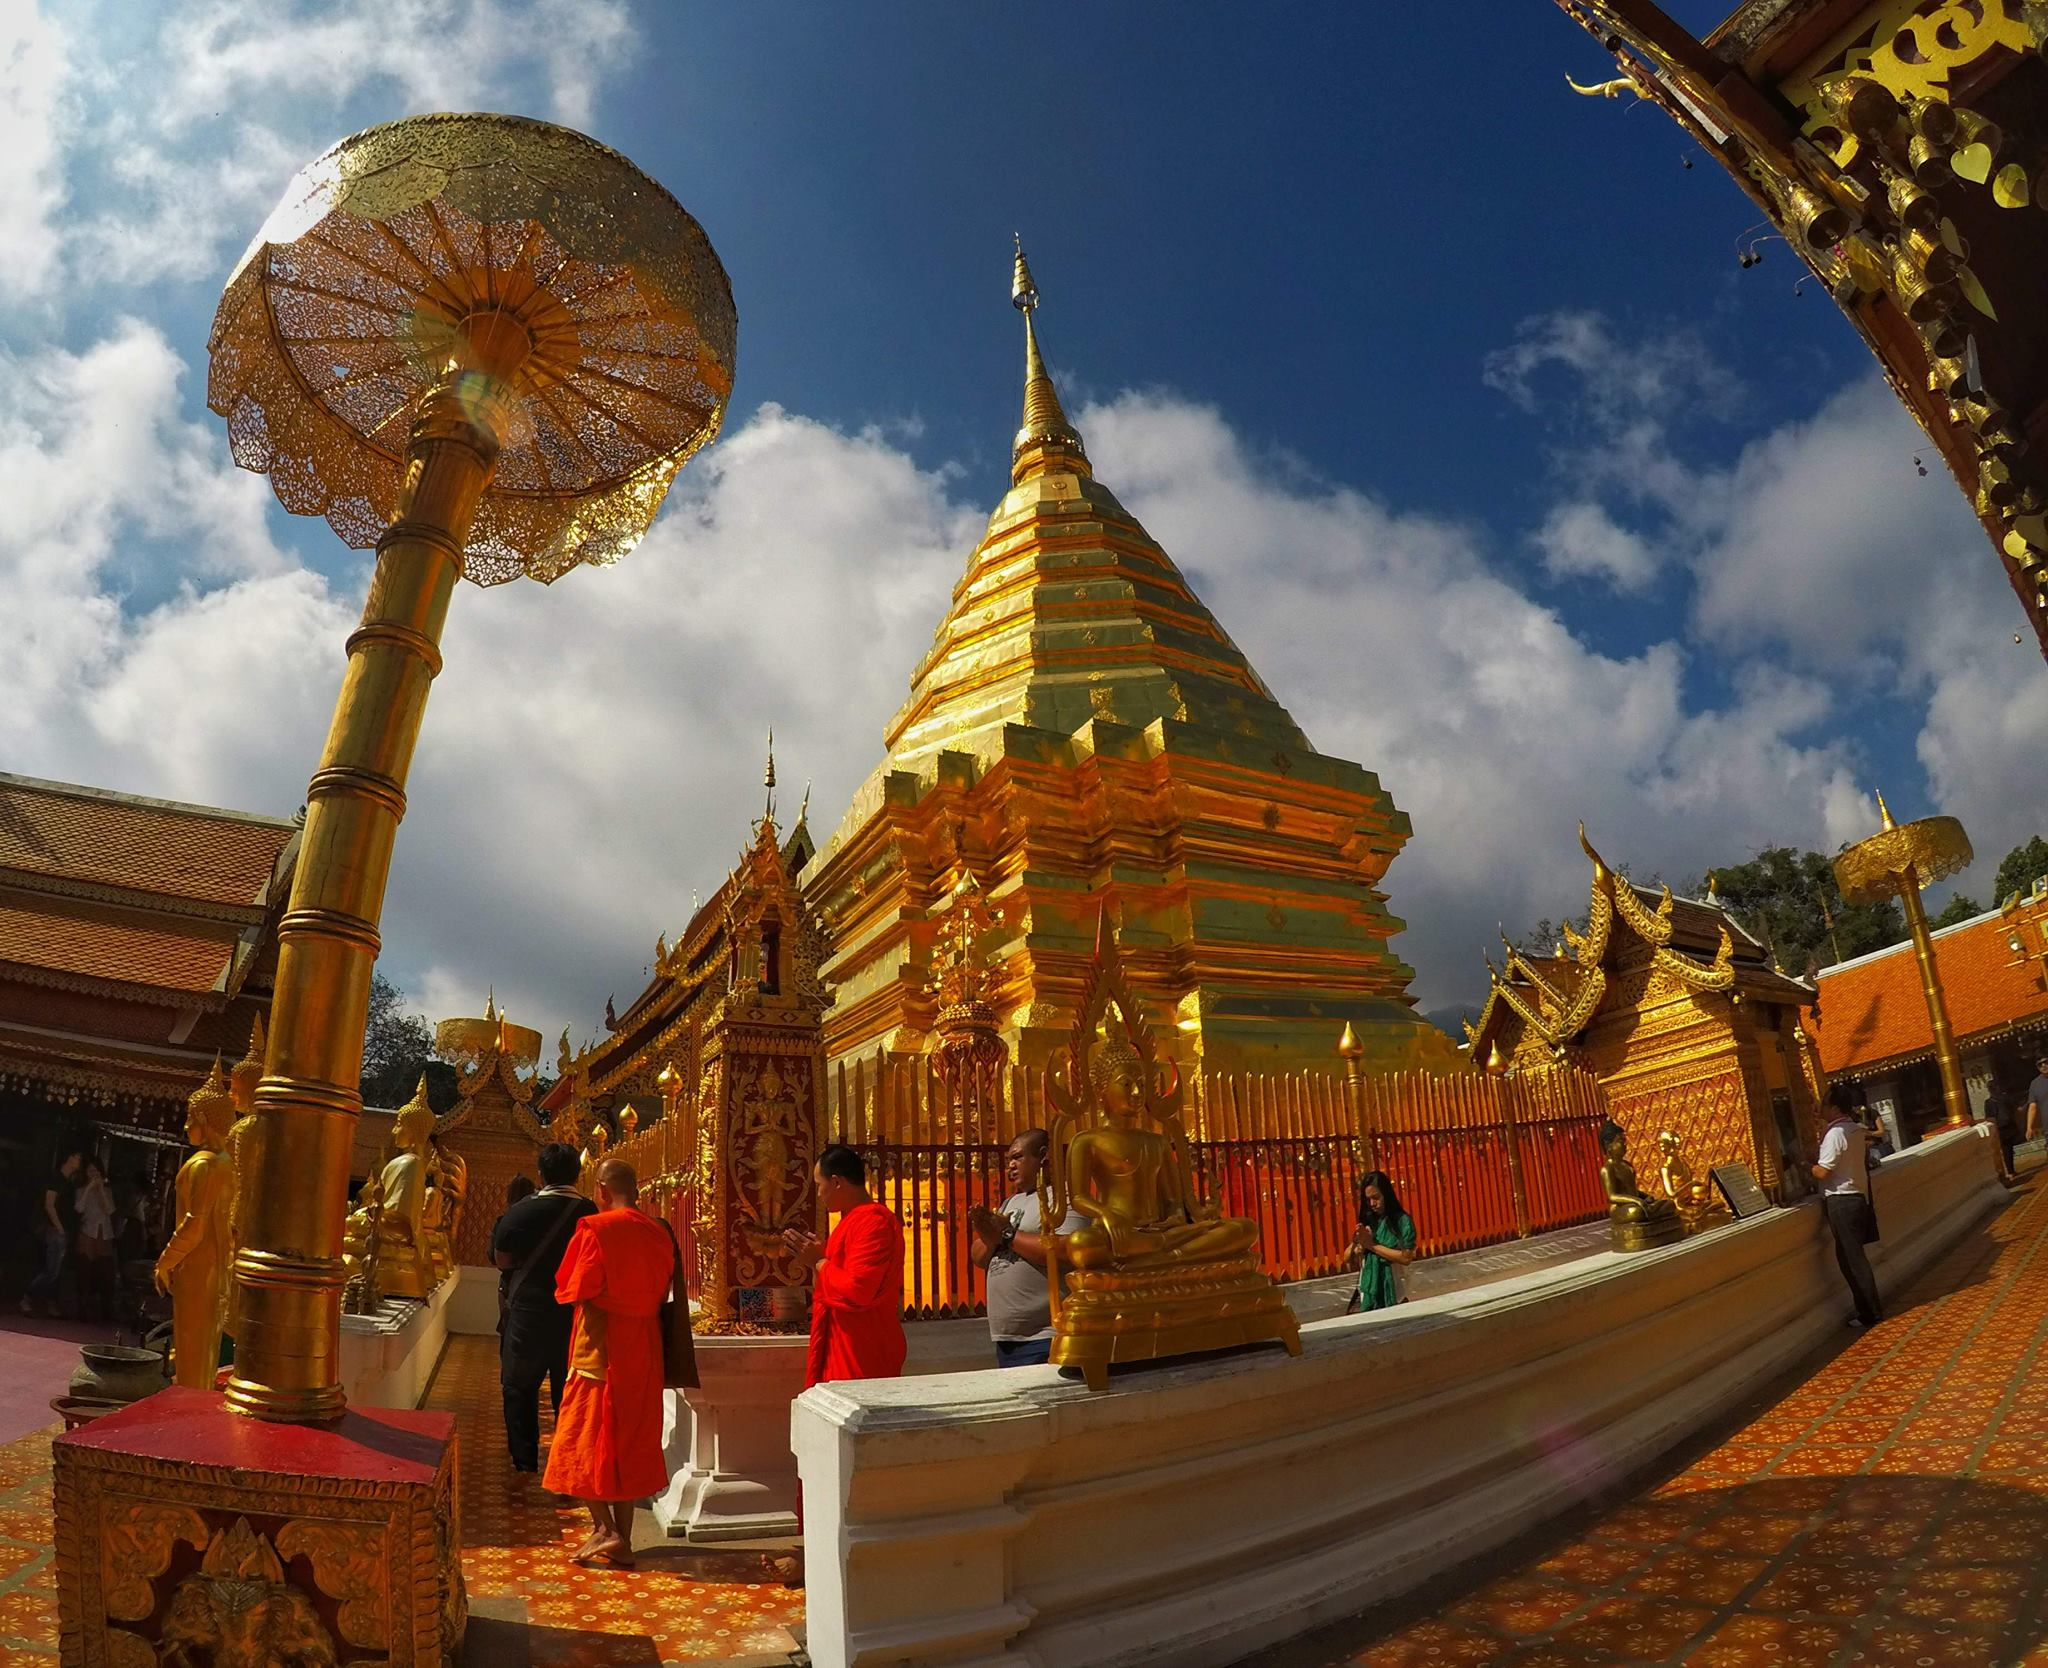 top 10 things to do in Chiang Mai - See Doi Suthep Temple